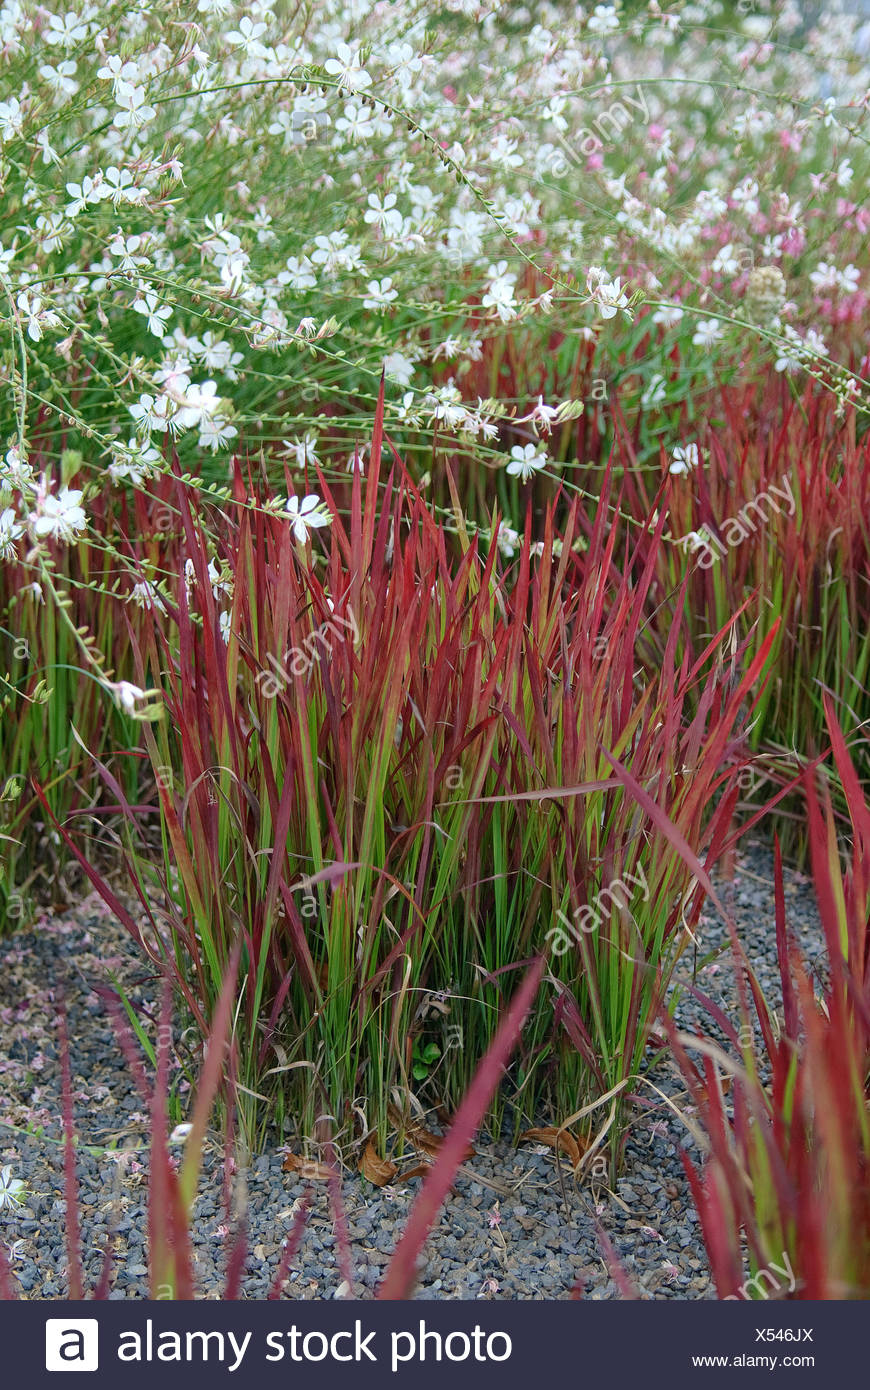 woollygrass, Japanese Blood Gras (Imperata cylindrica 'Red Baron', Imperata cylindrica Red Baron), cultivar Red Baron, together with Gaura lindheimeri - Stock Image